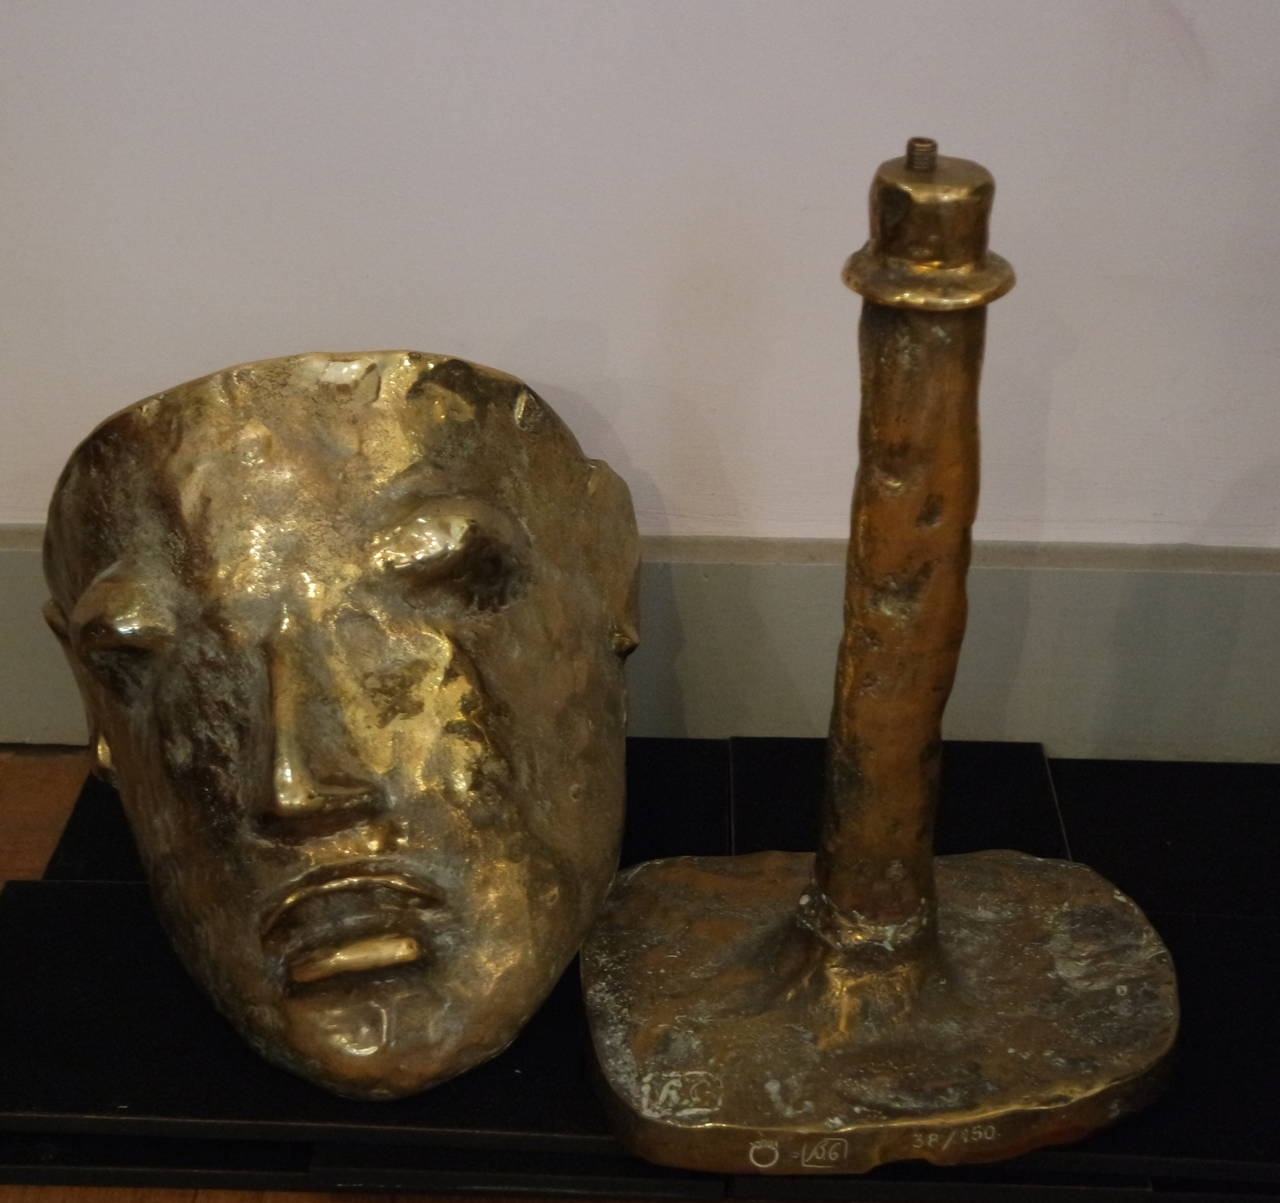 Fantastic Bronze Mask Lamp By Garouste And Bonetti At 1stdibs